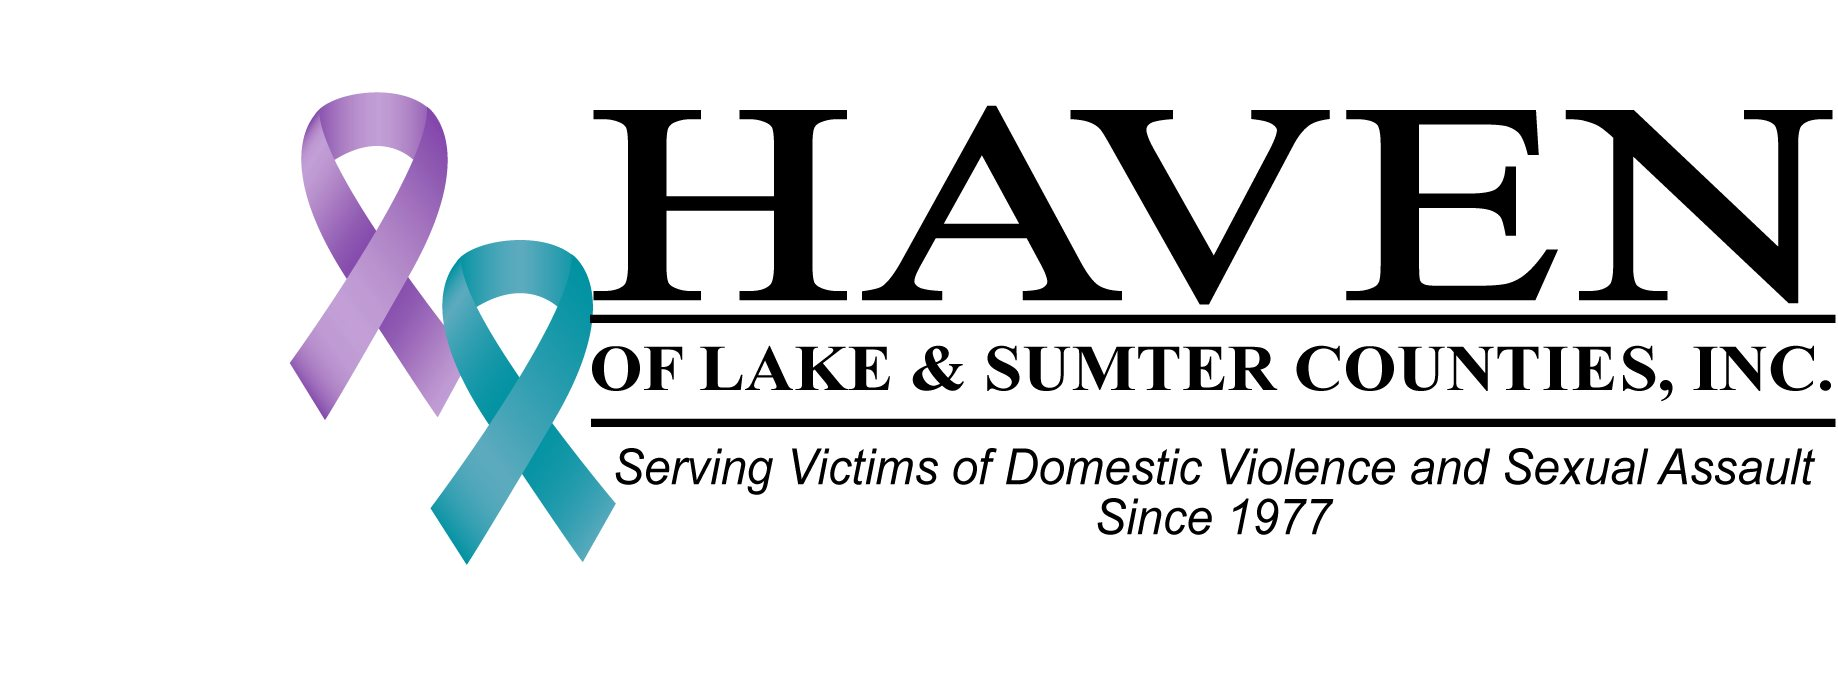 Haven of Lake & Sumter Counties, Inc.